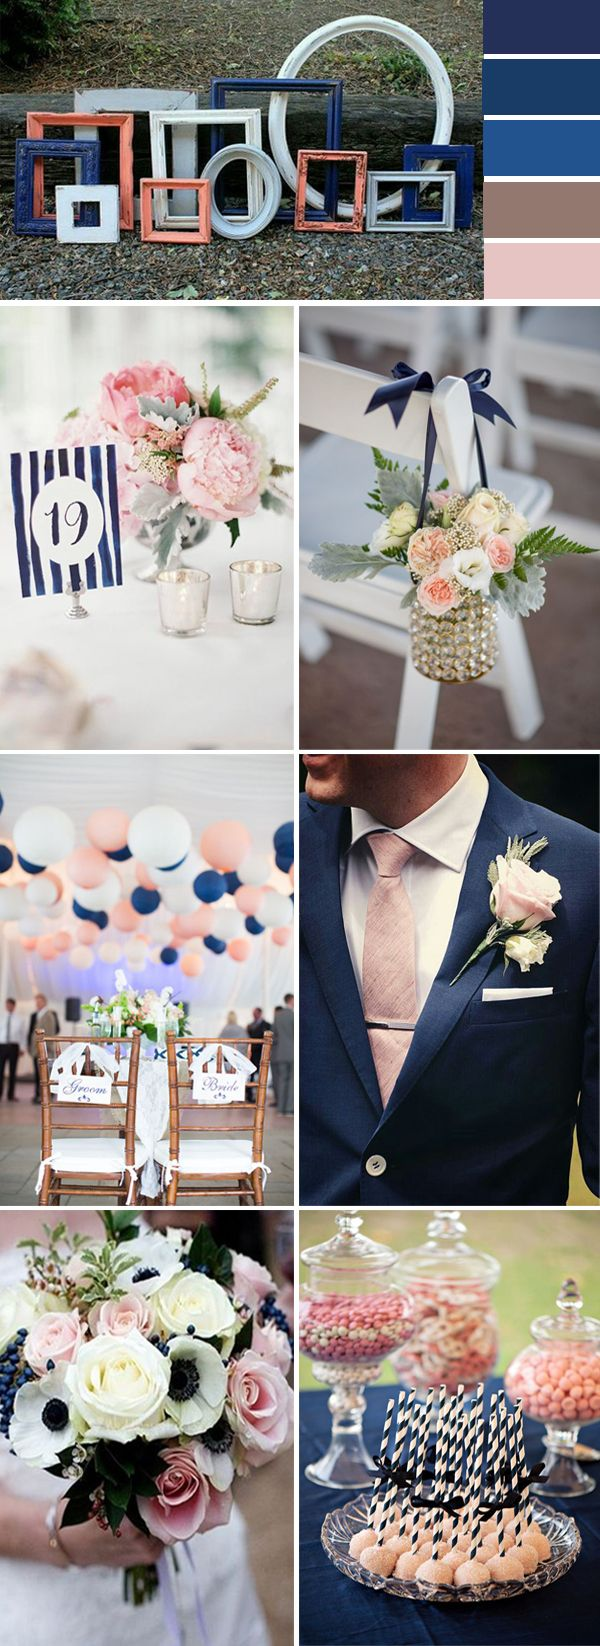 Top 10 Wedding Color Ideas for 2017 Spring | Blue wedding colors ...